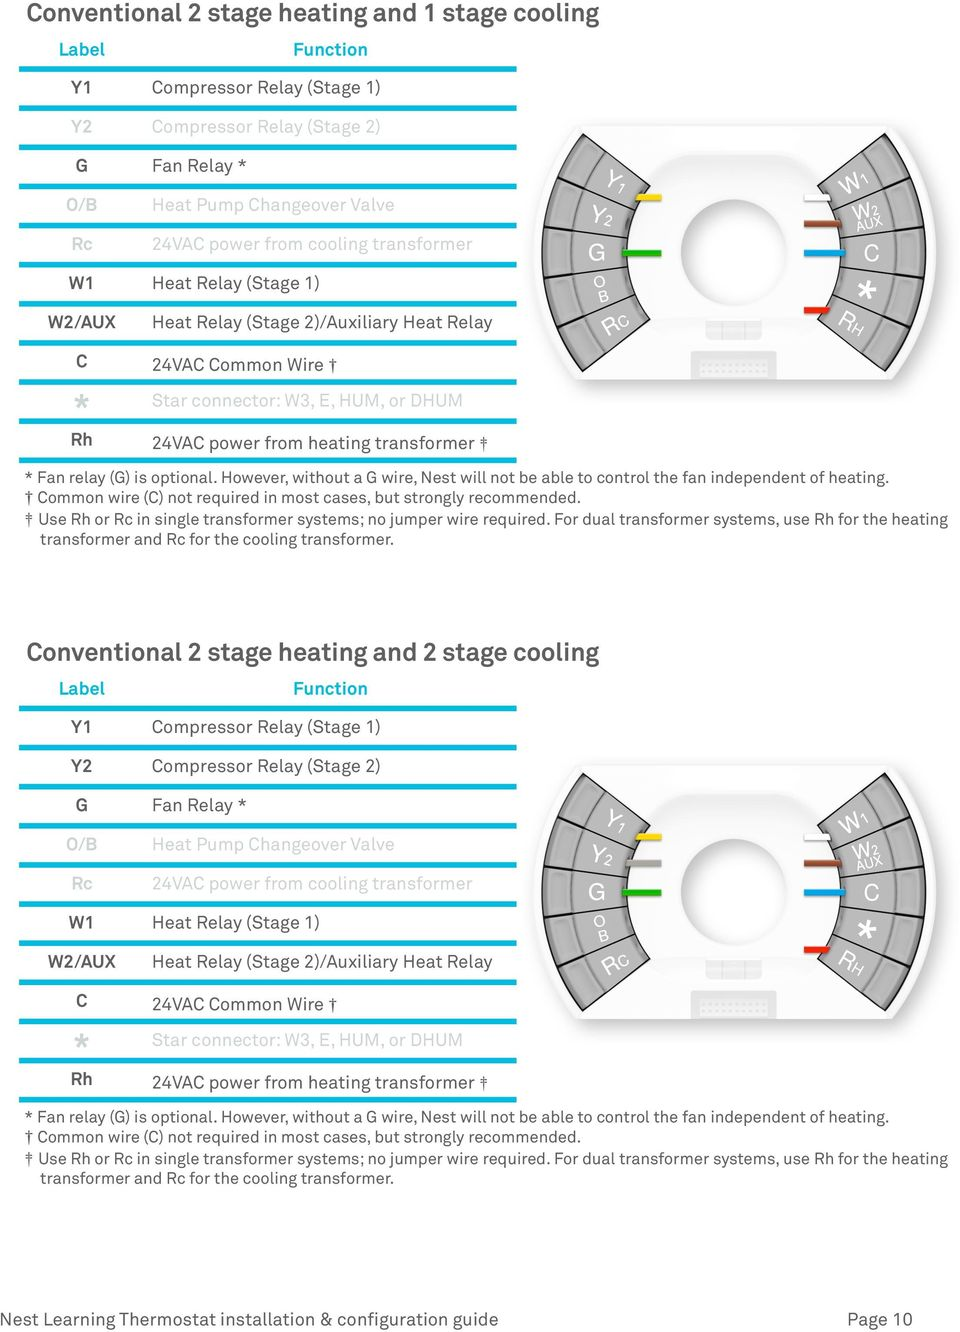 Nest Learning Thermostat Pro Installation Configuration Guide Pdf 2 Stage Heat Wiring Diagram Free Picture Is Optional However Without A G Wire Will Not Be Able To 13 Conventional 3 Heating And